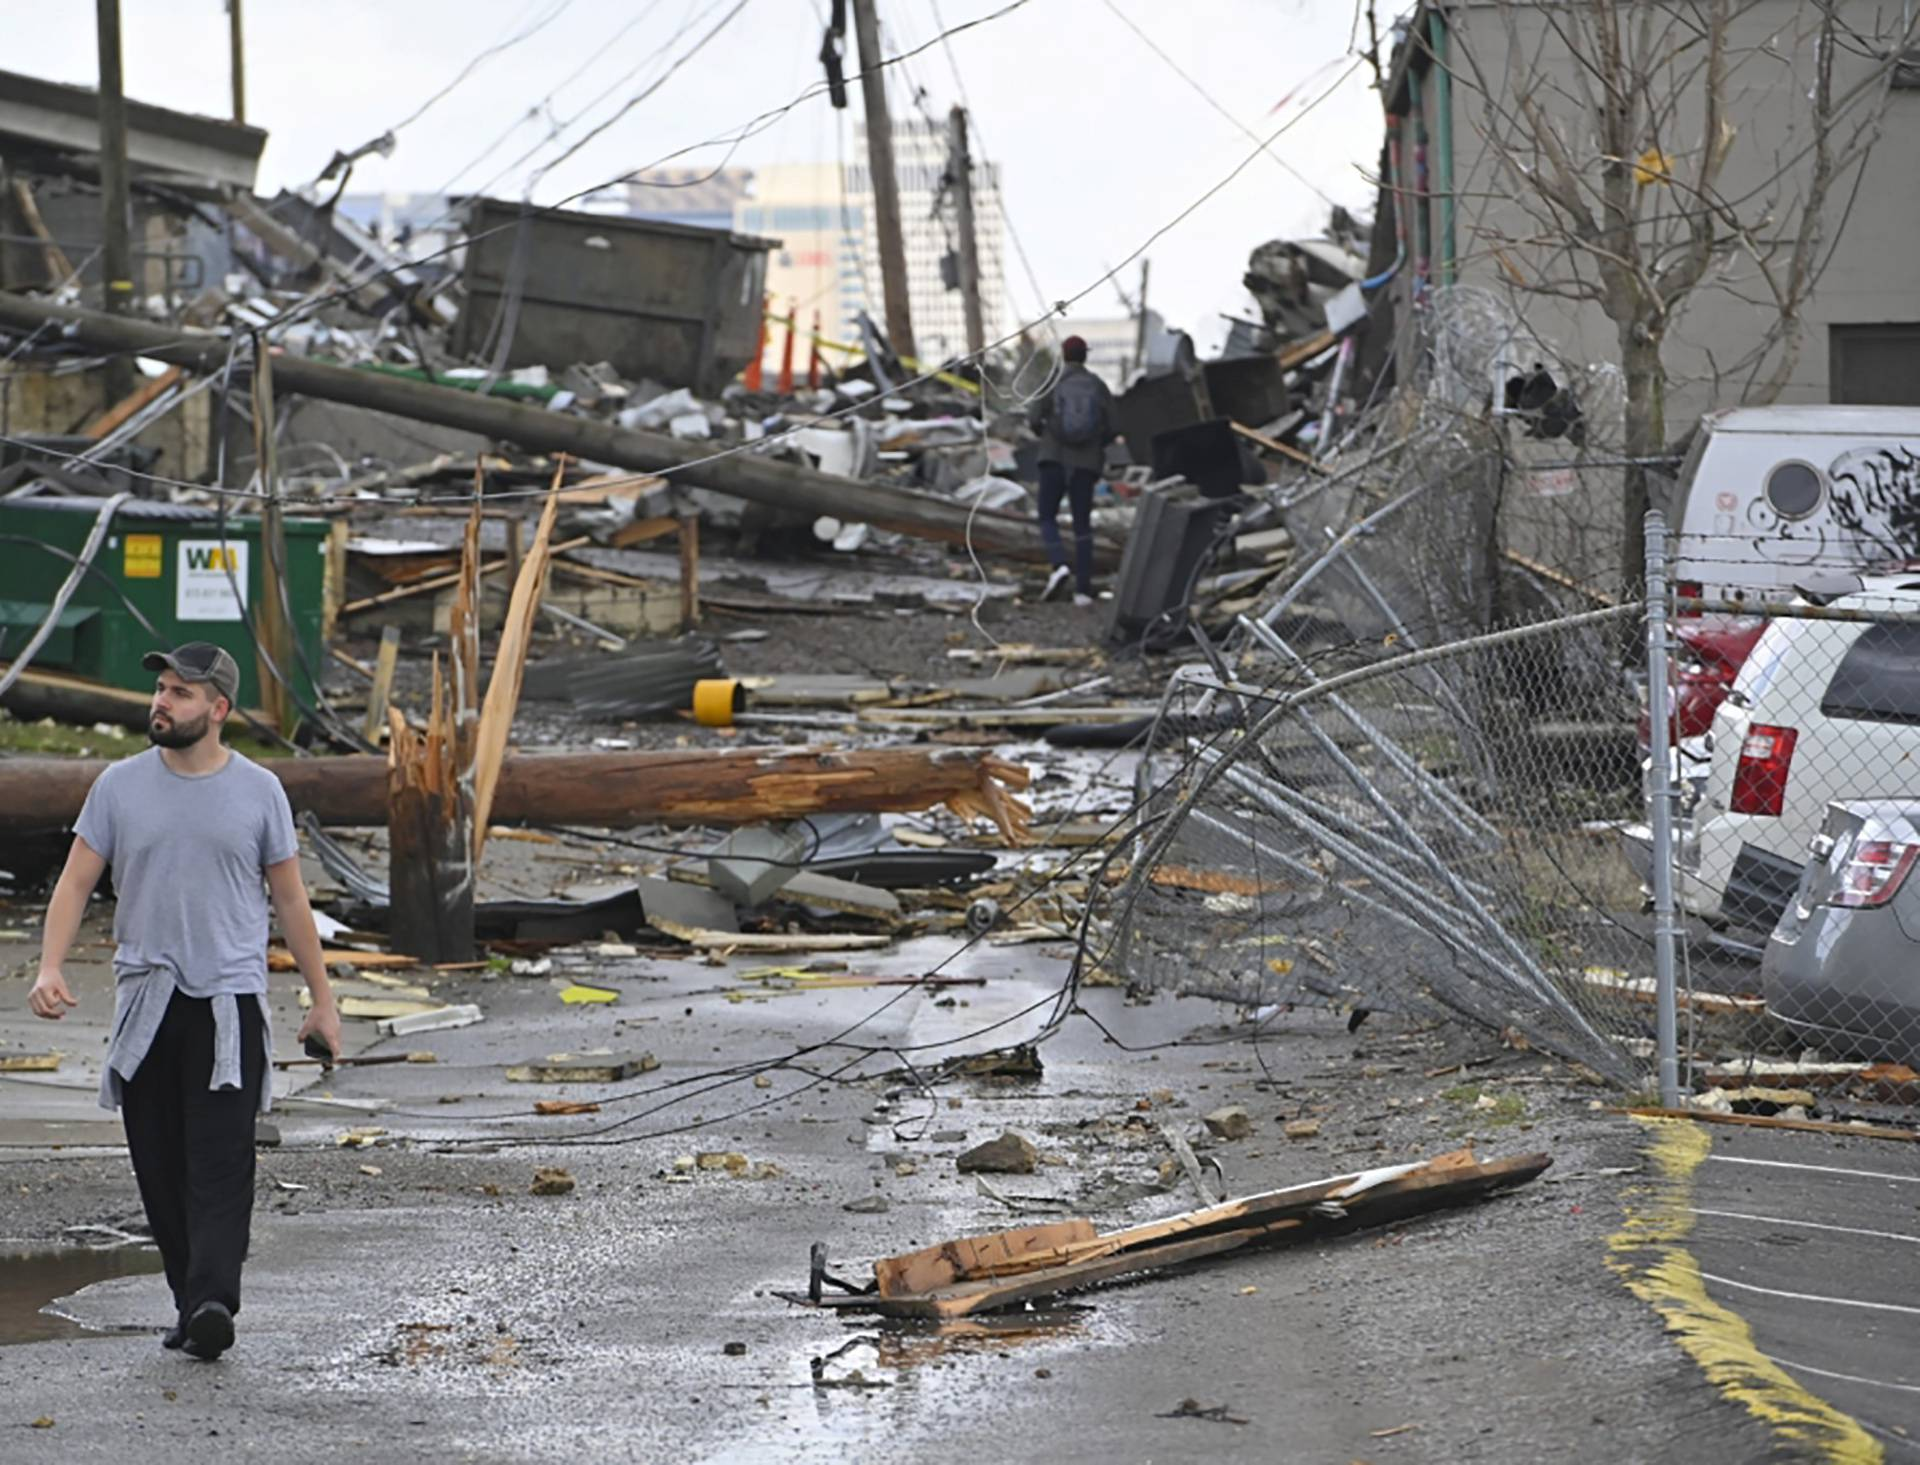 A man views damage in an alley behind Woodland Street after a tornado touched down in Nashville